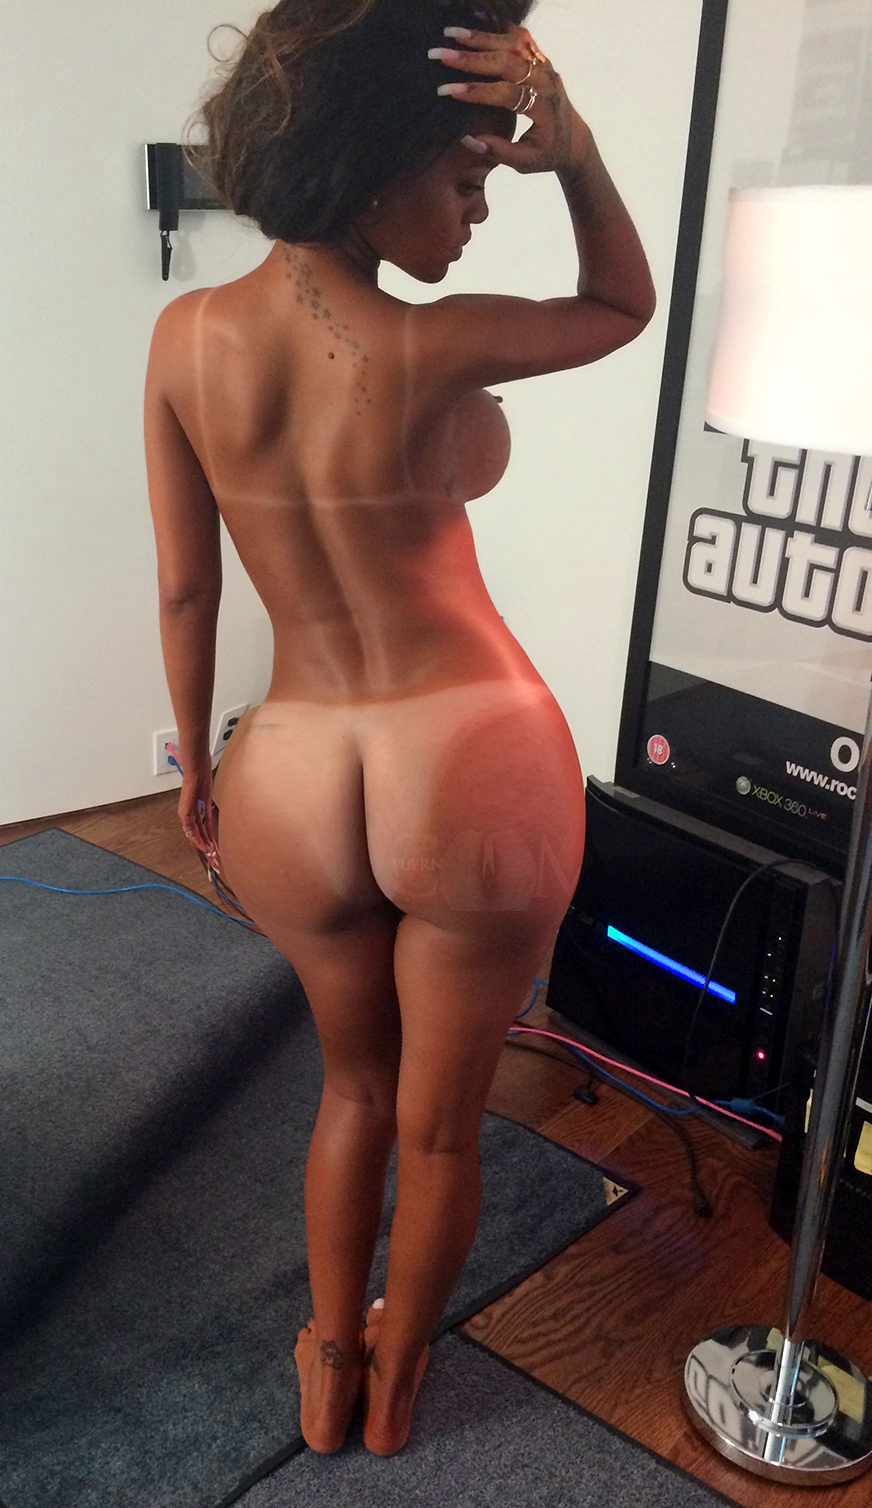 hoopz from flavor of love nude